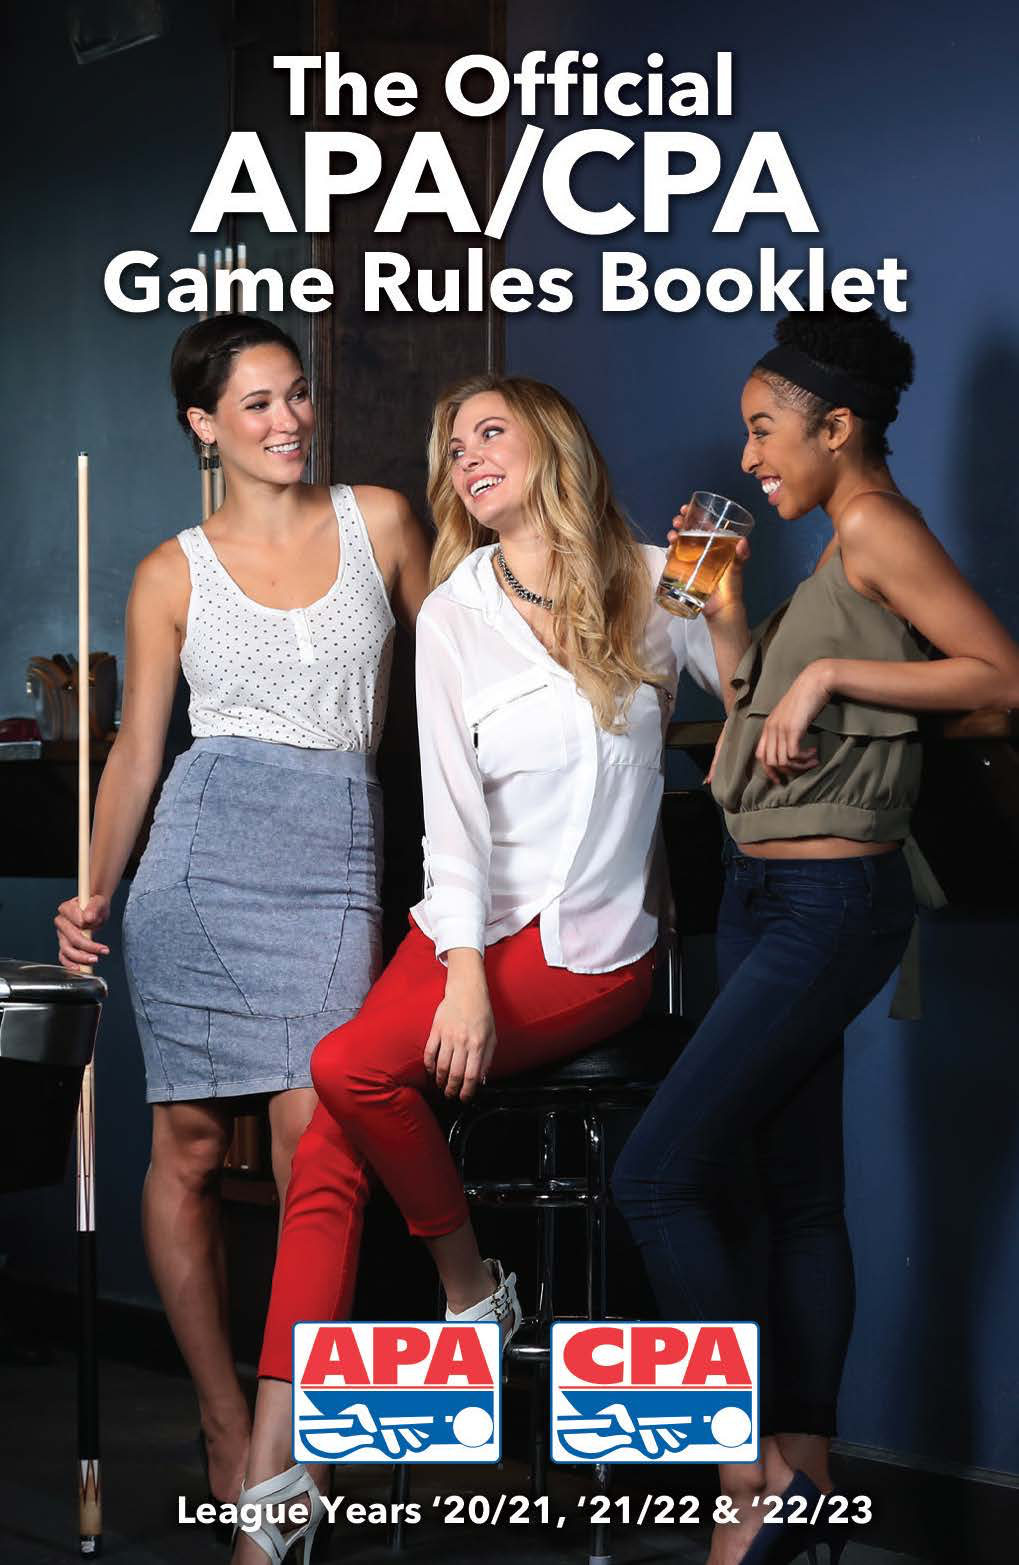 Game Rules Booklet for 8-Ball and 9-Ball